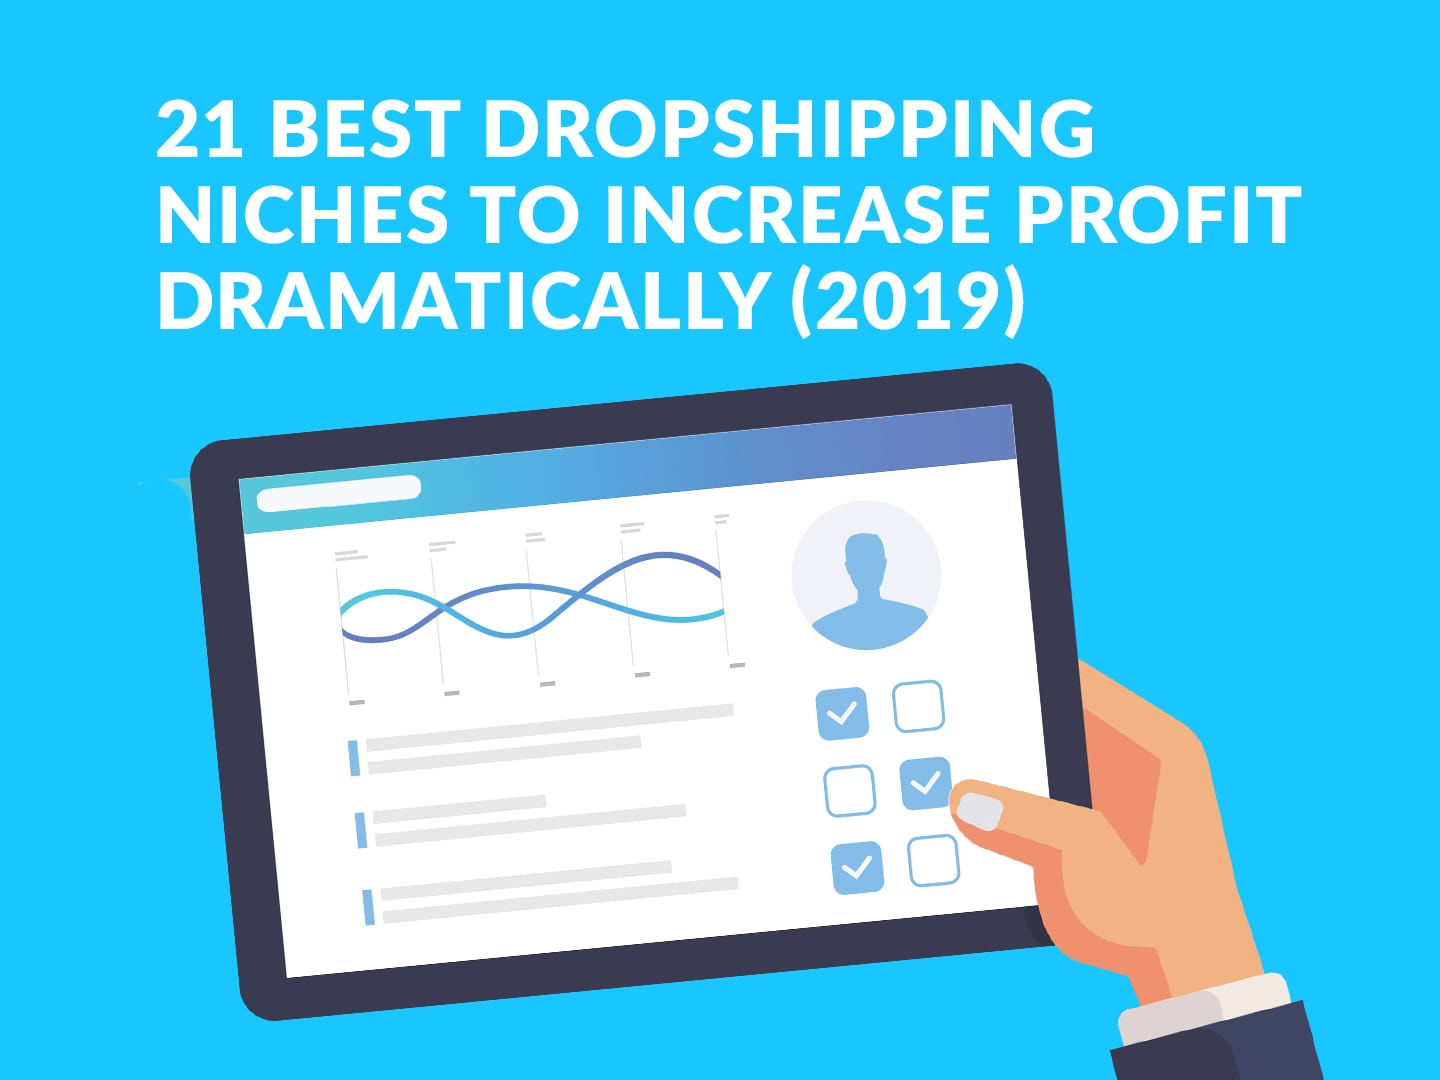 21 Best Dropshipping Niches to Increase Profit Dramatically